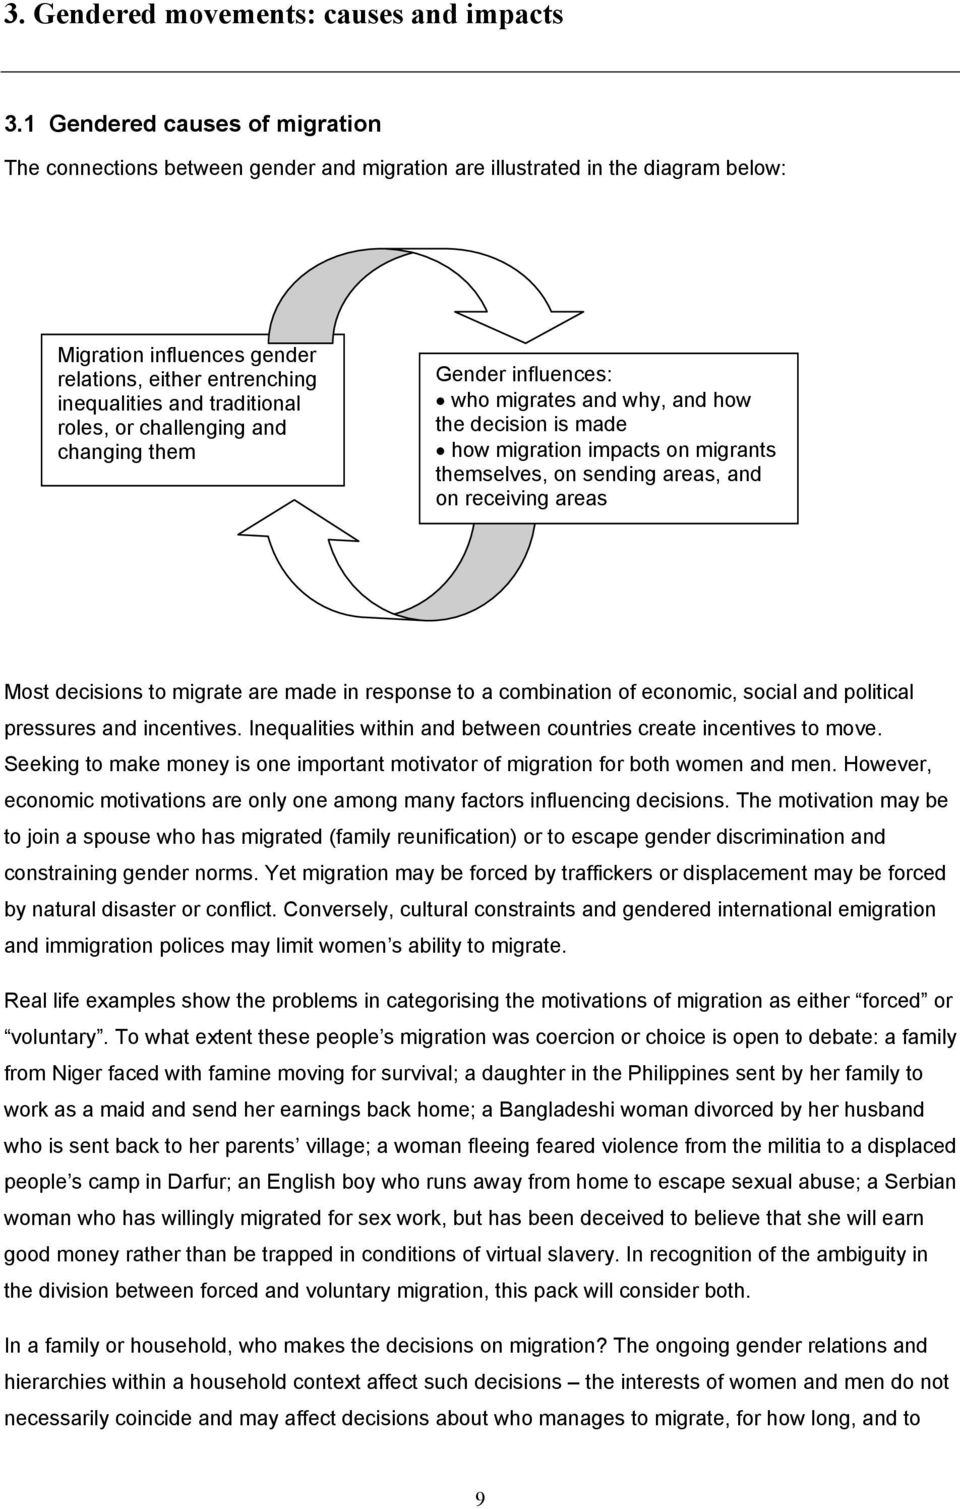 traditional roles, or challenging and changing them Gender influences: who migrates and why, and how the decision is made how migration impacts on migrants themselves, on sending areas, and on